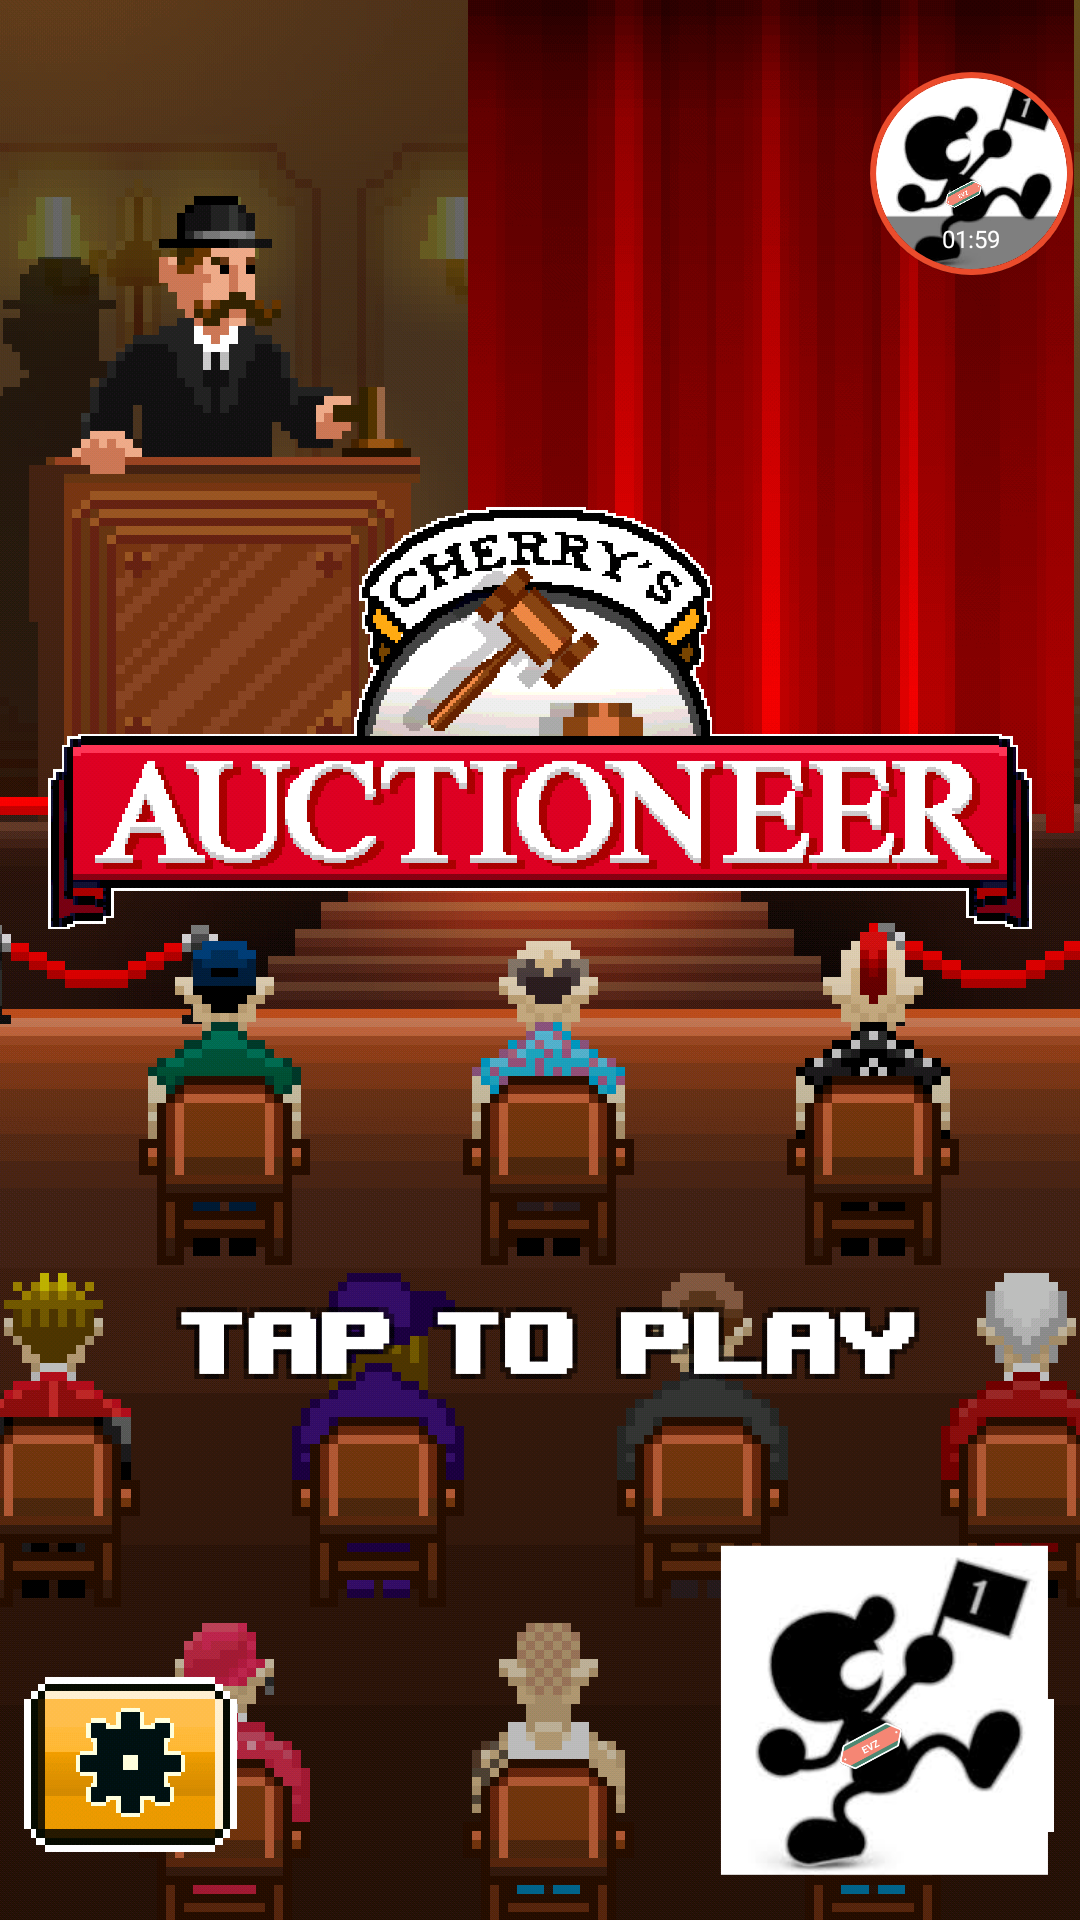 Auctioneer 67 points